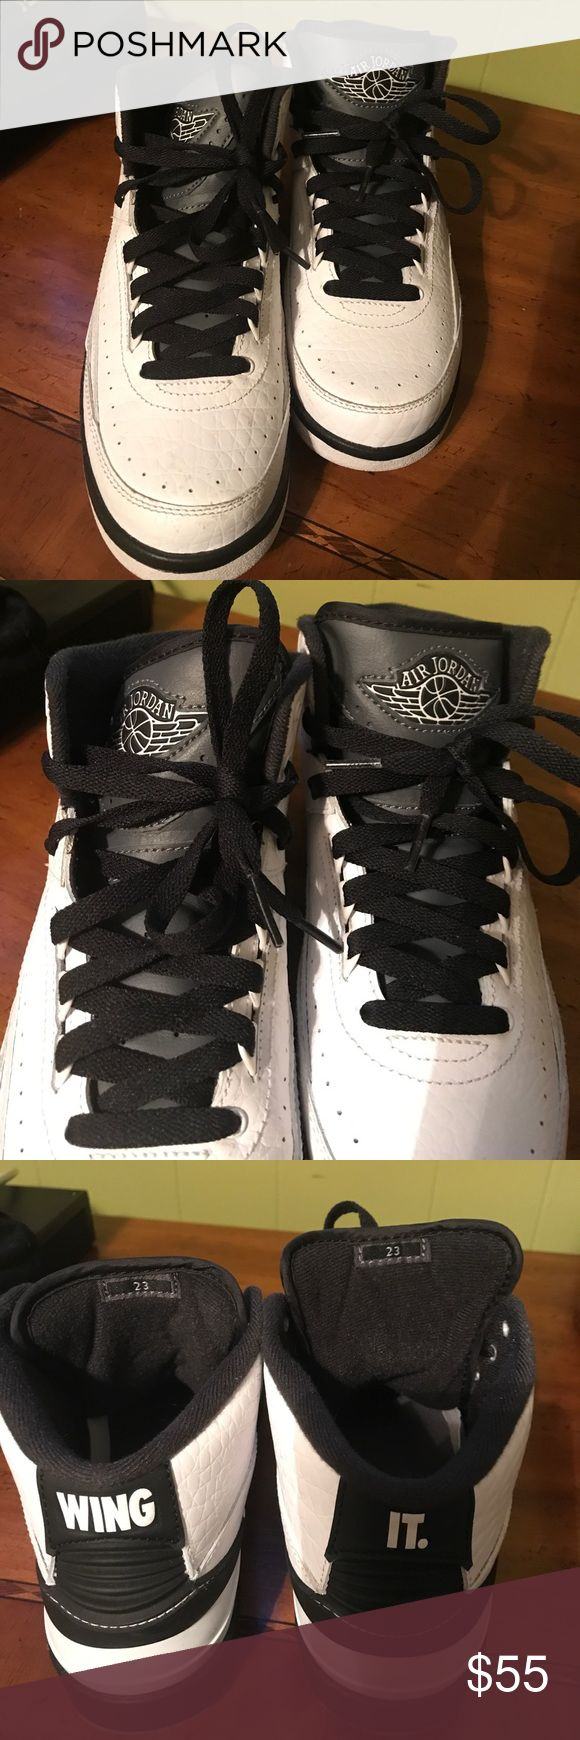 💥💥🔥AIR JORDANS 🔥💥💥 🔥🔥AIR JORDANS 🔥🔥MY SON WORN THEM 2x BLACK/WHITE ABSOLUTELY IN GREAT CONDITION SIZE 5.5 youth PLEASE NO LOW BALLS !!!!' MY SON SNEAKERS ARE ALL AUTHENTIC Jordan Shoes Sneakers